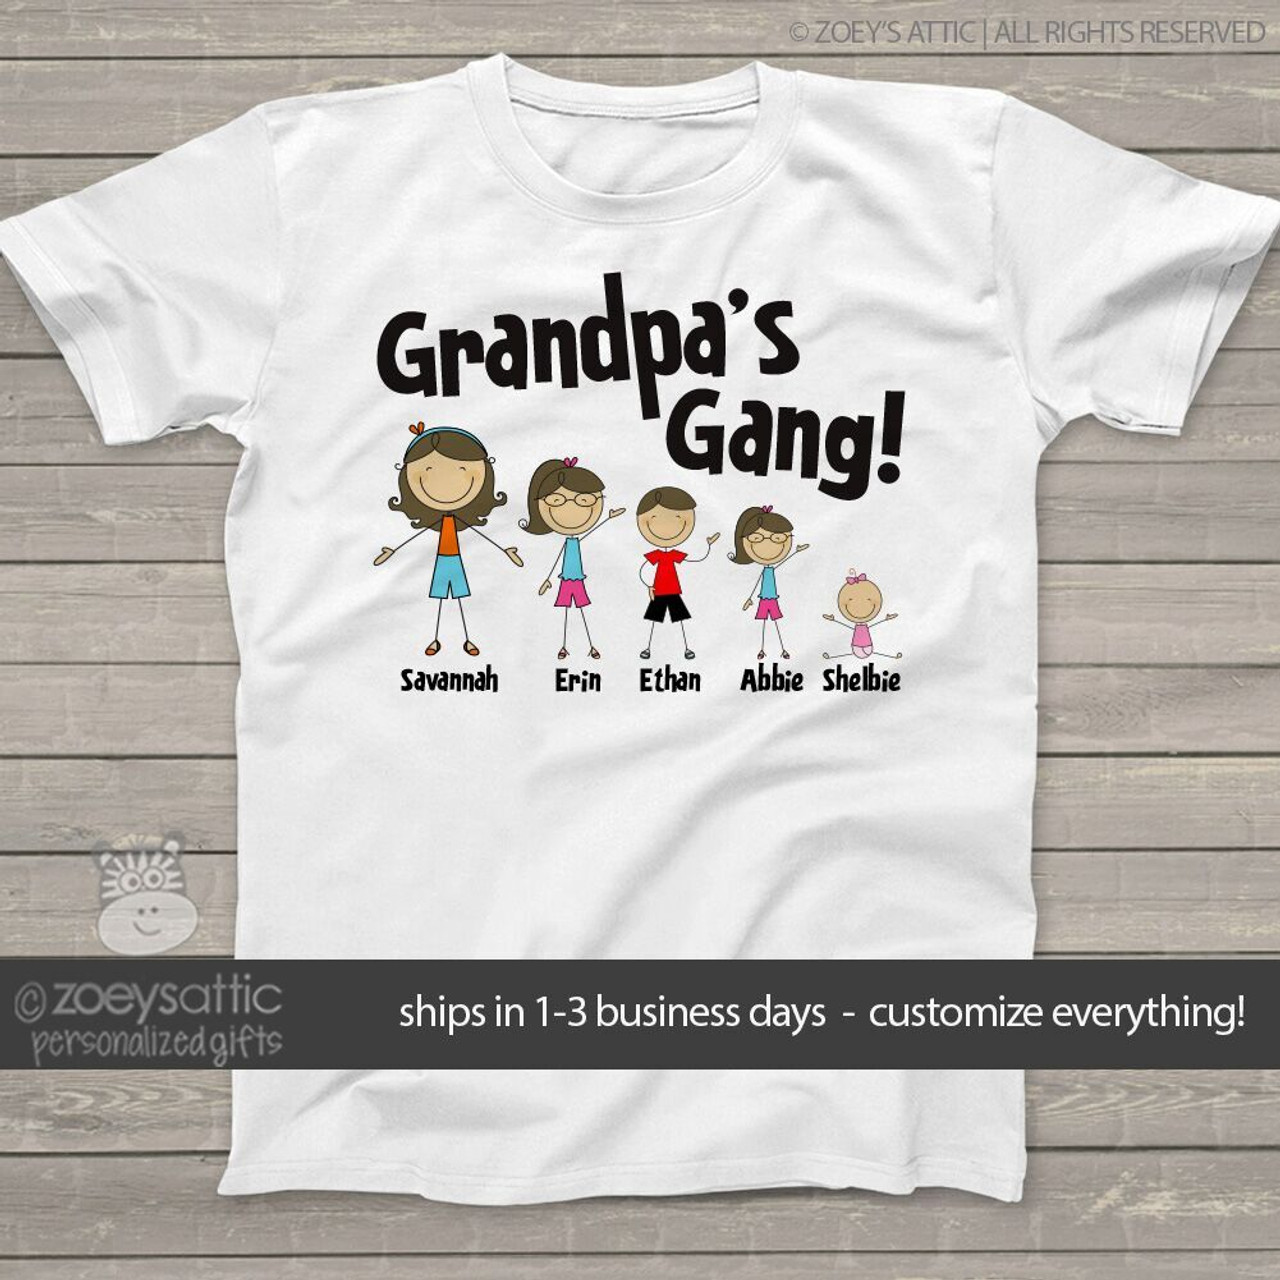 Customized T Shirts For Family Bcd Tofu House